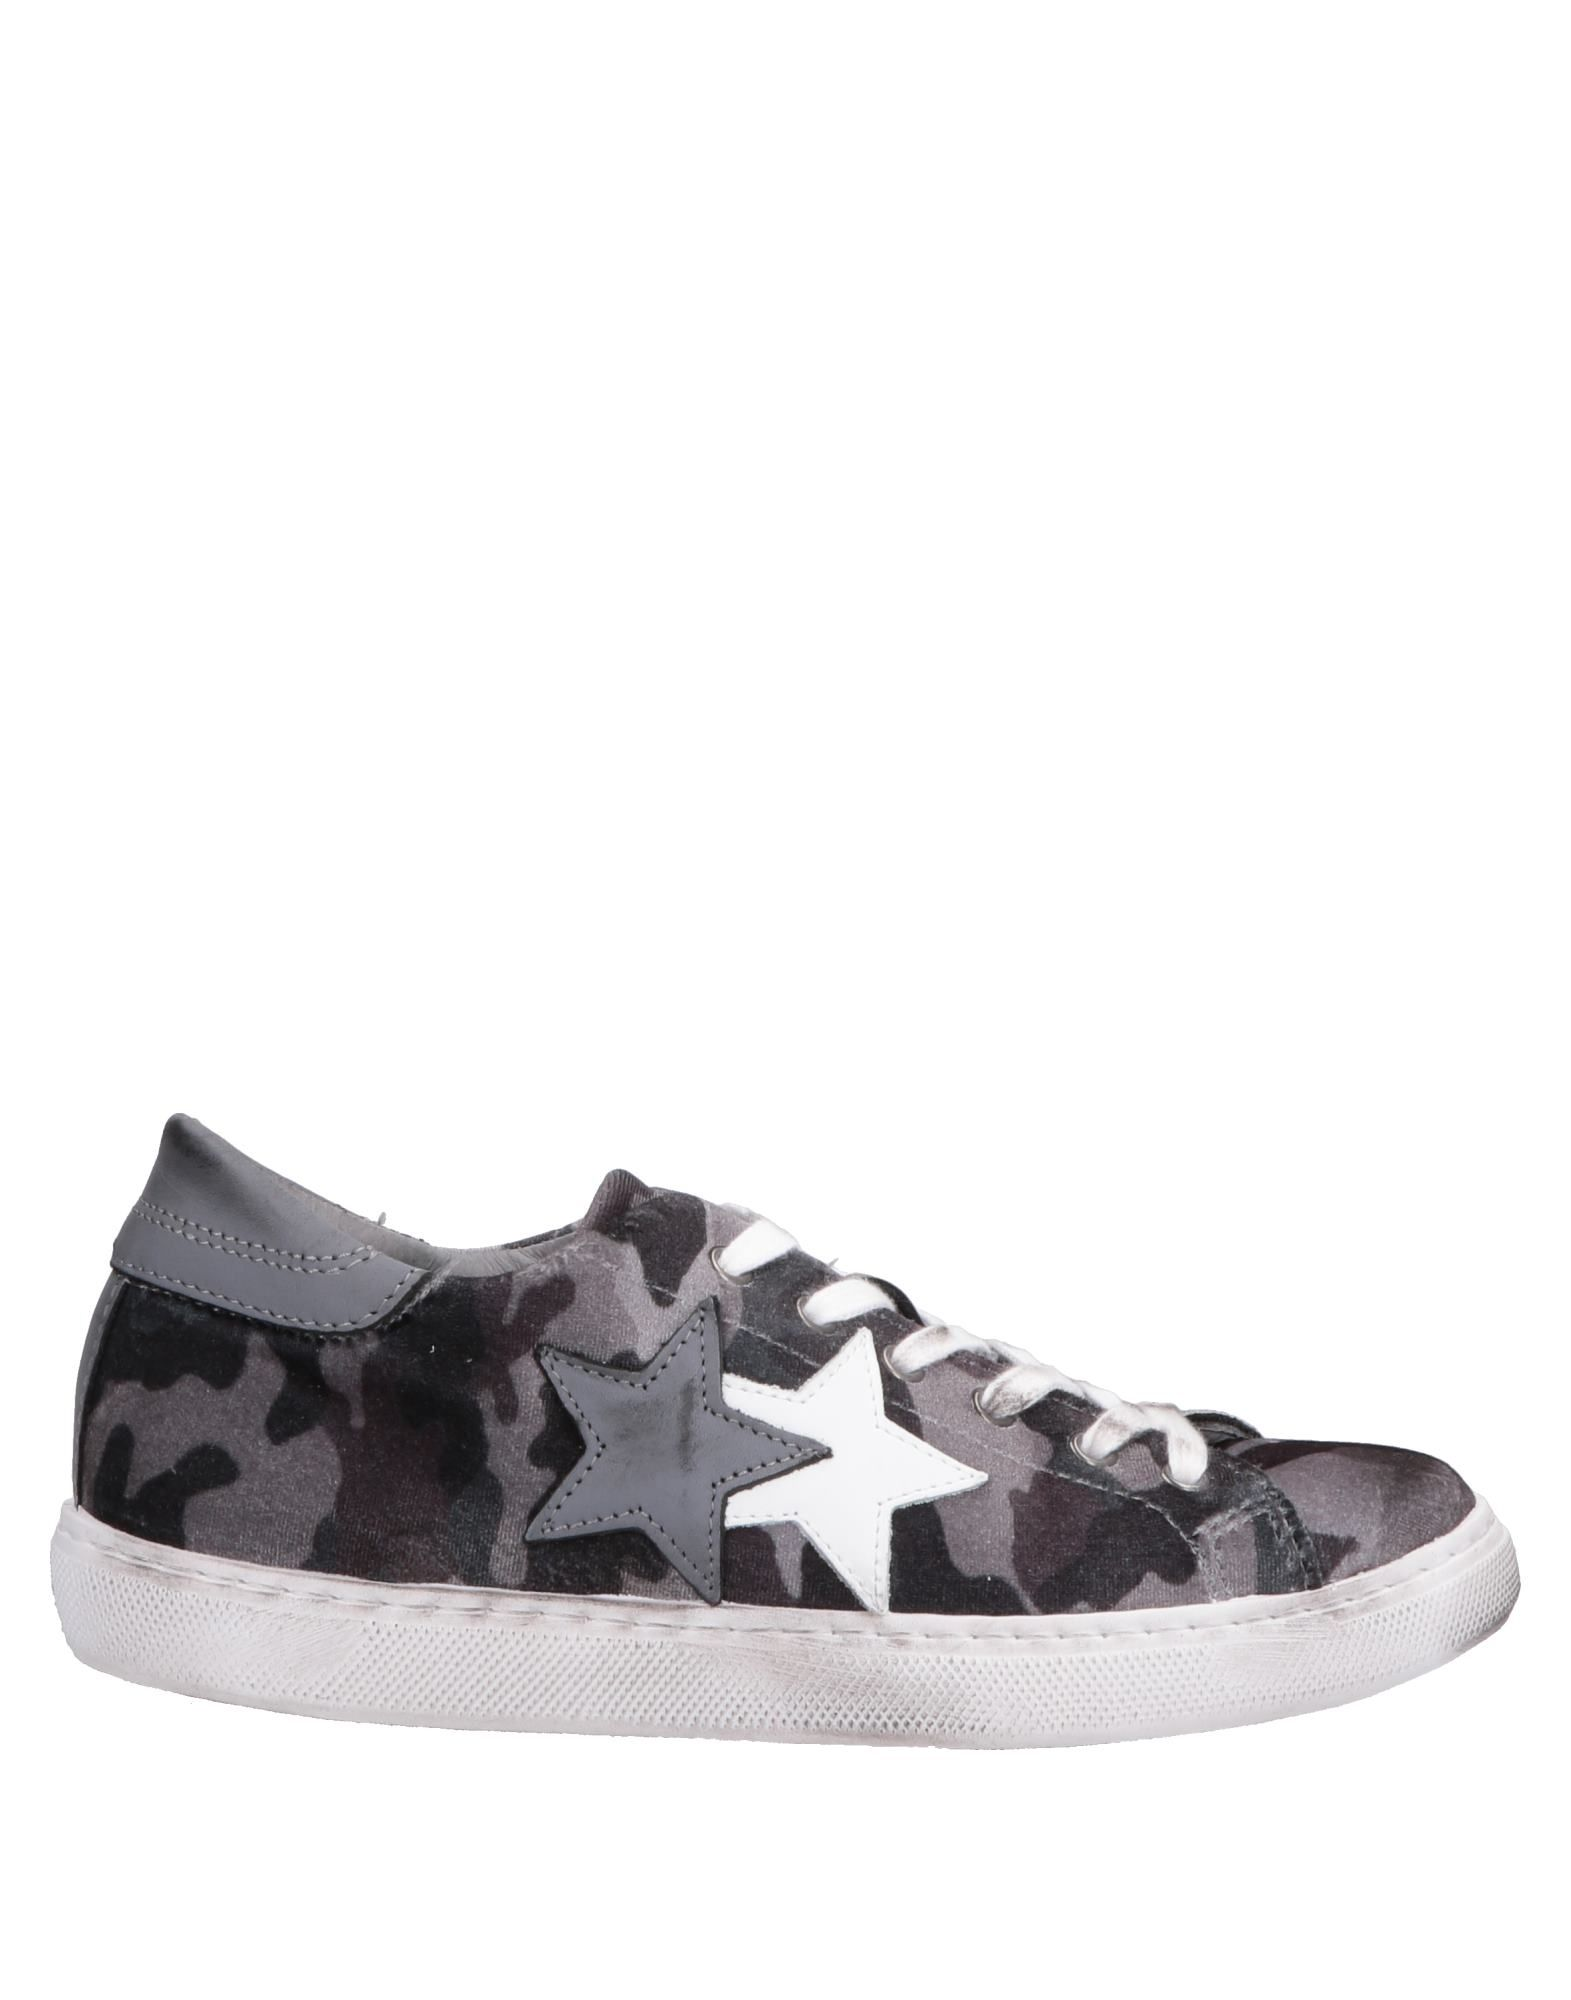 2Star Sneakers - Women 2Star Sneakers online on 11583796IN  United Kingdom - 11583796IN on 18519e